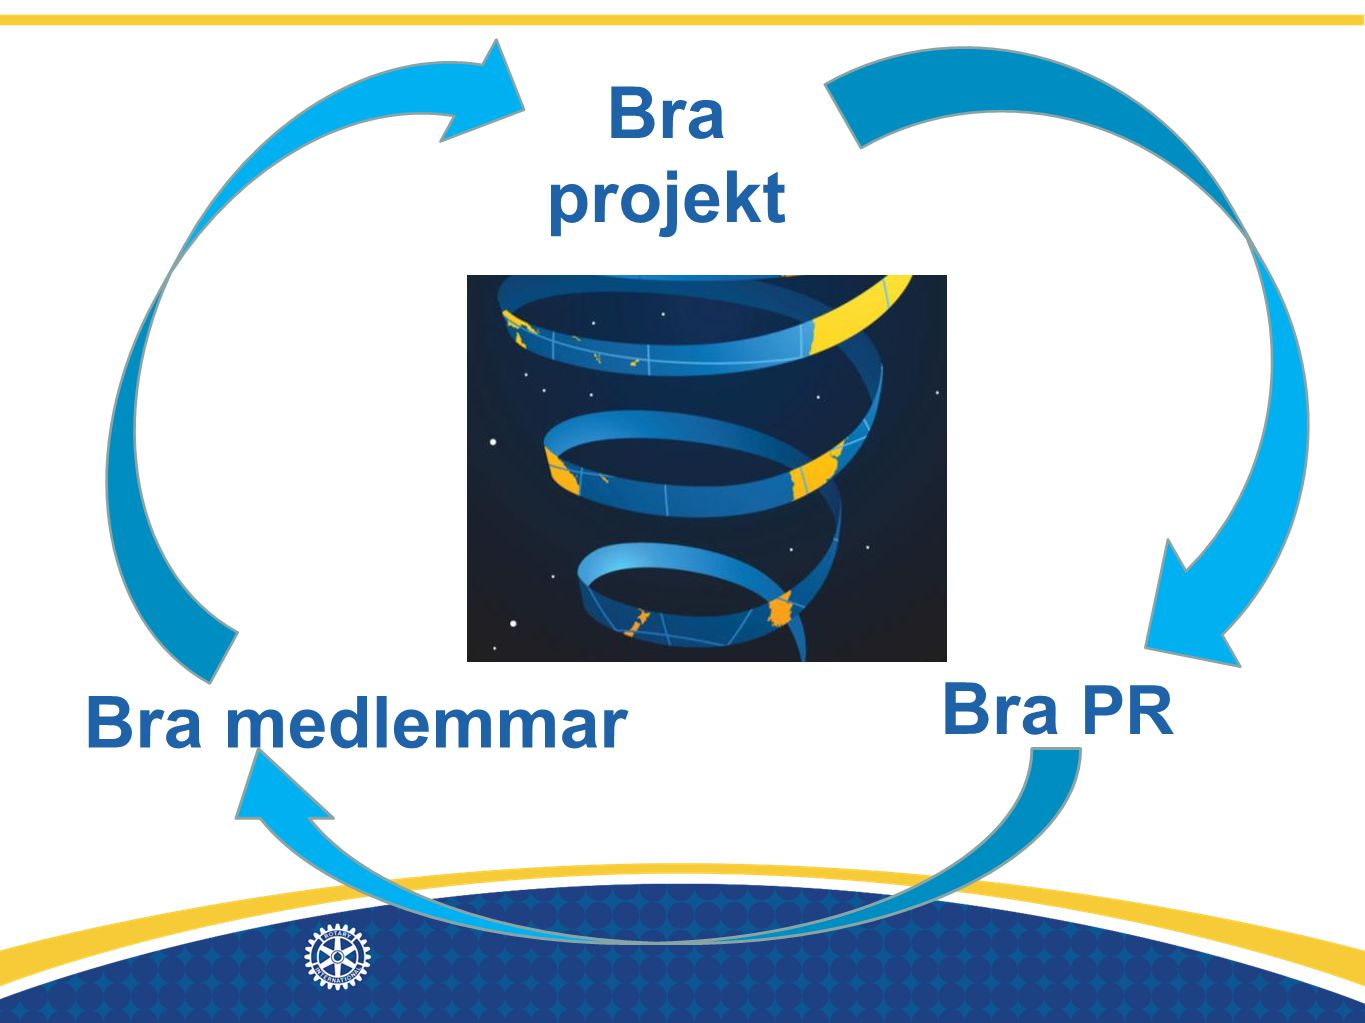 Bra projekt Bra PR Bra medlemmar The magic circle